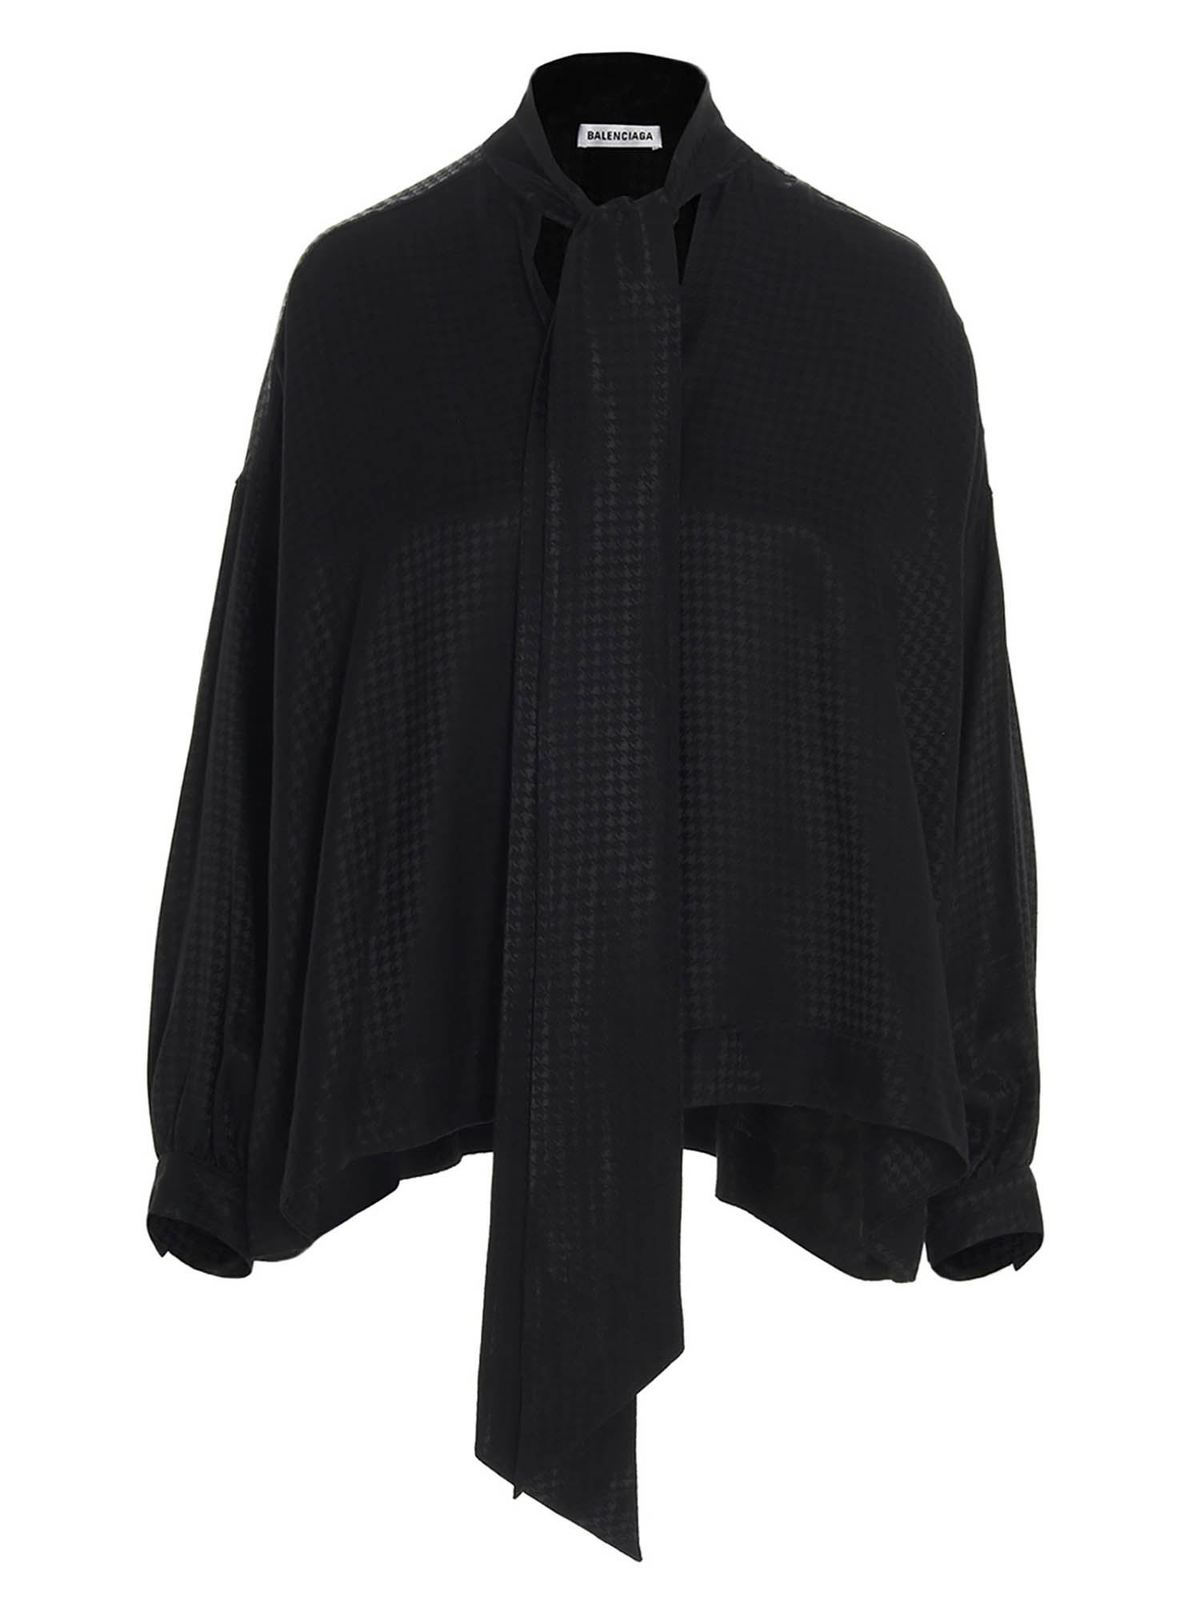 BALENCIAGA BOW BLOUSE IN BLACK